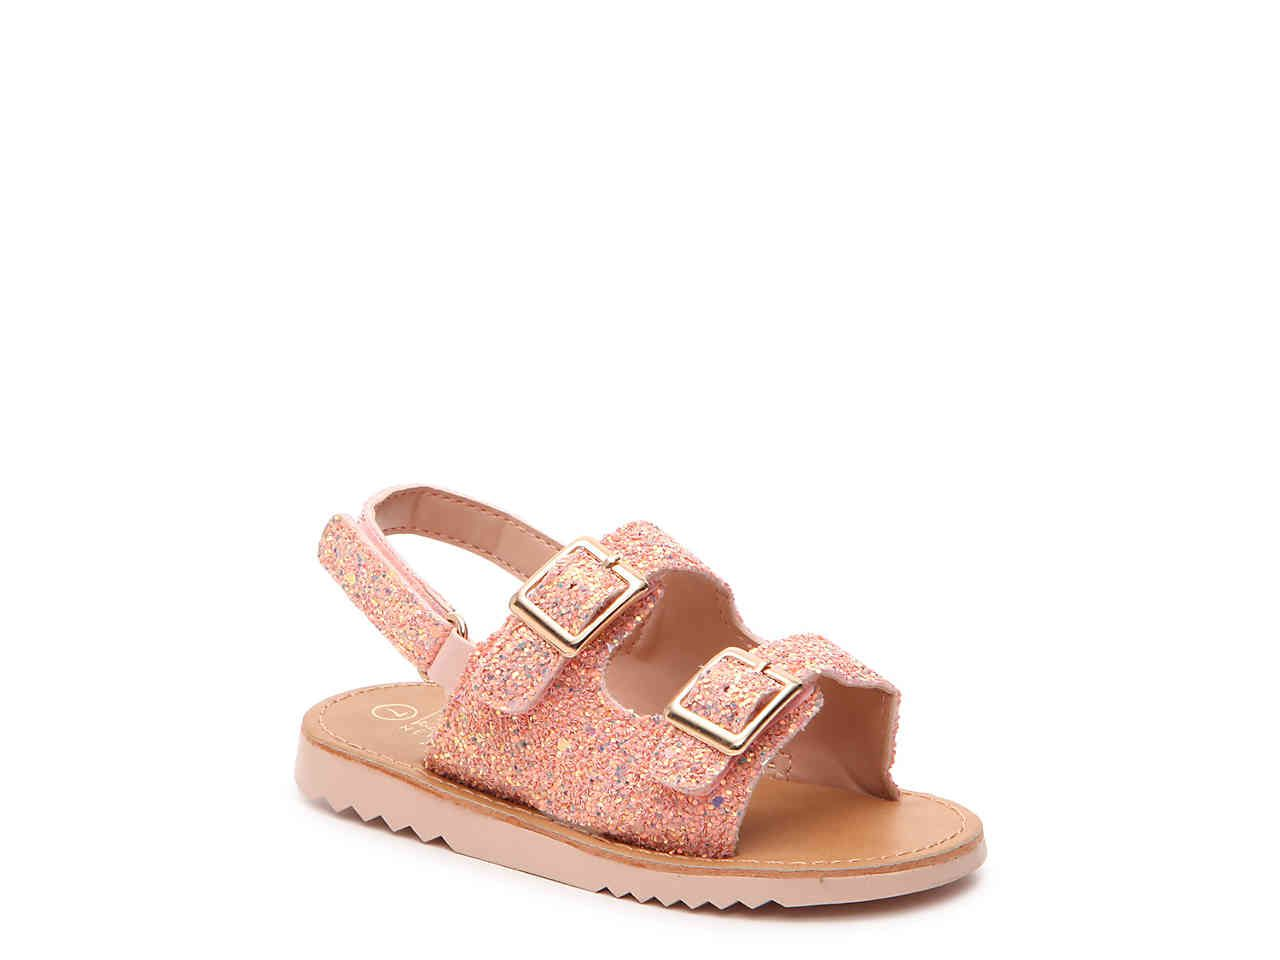 Girls shoes, Toddler sandals